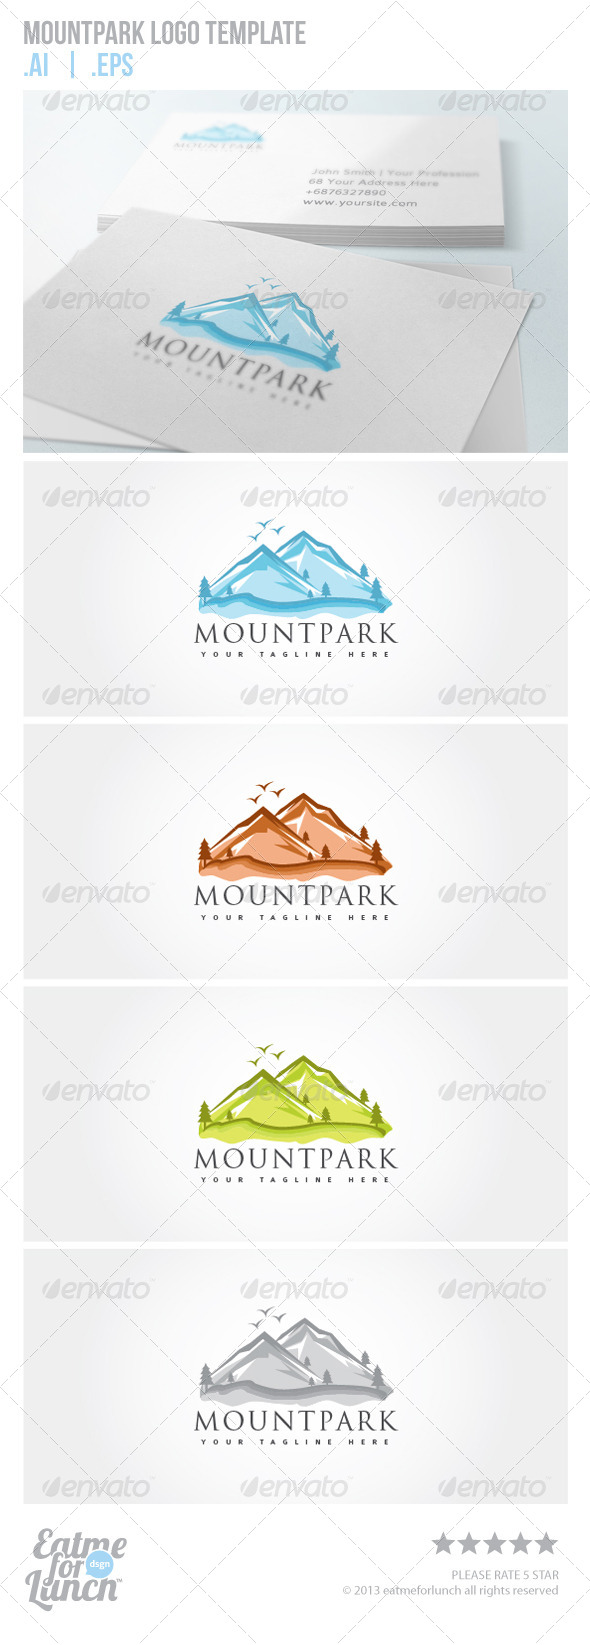 GraphicRiver Mountpark Logo Template 6010650